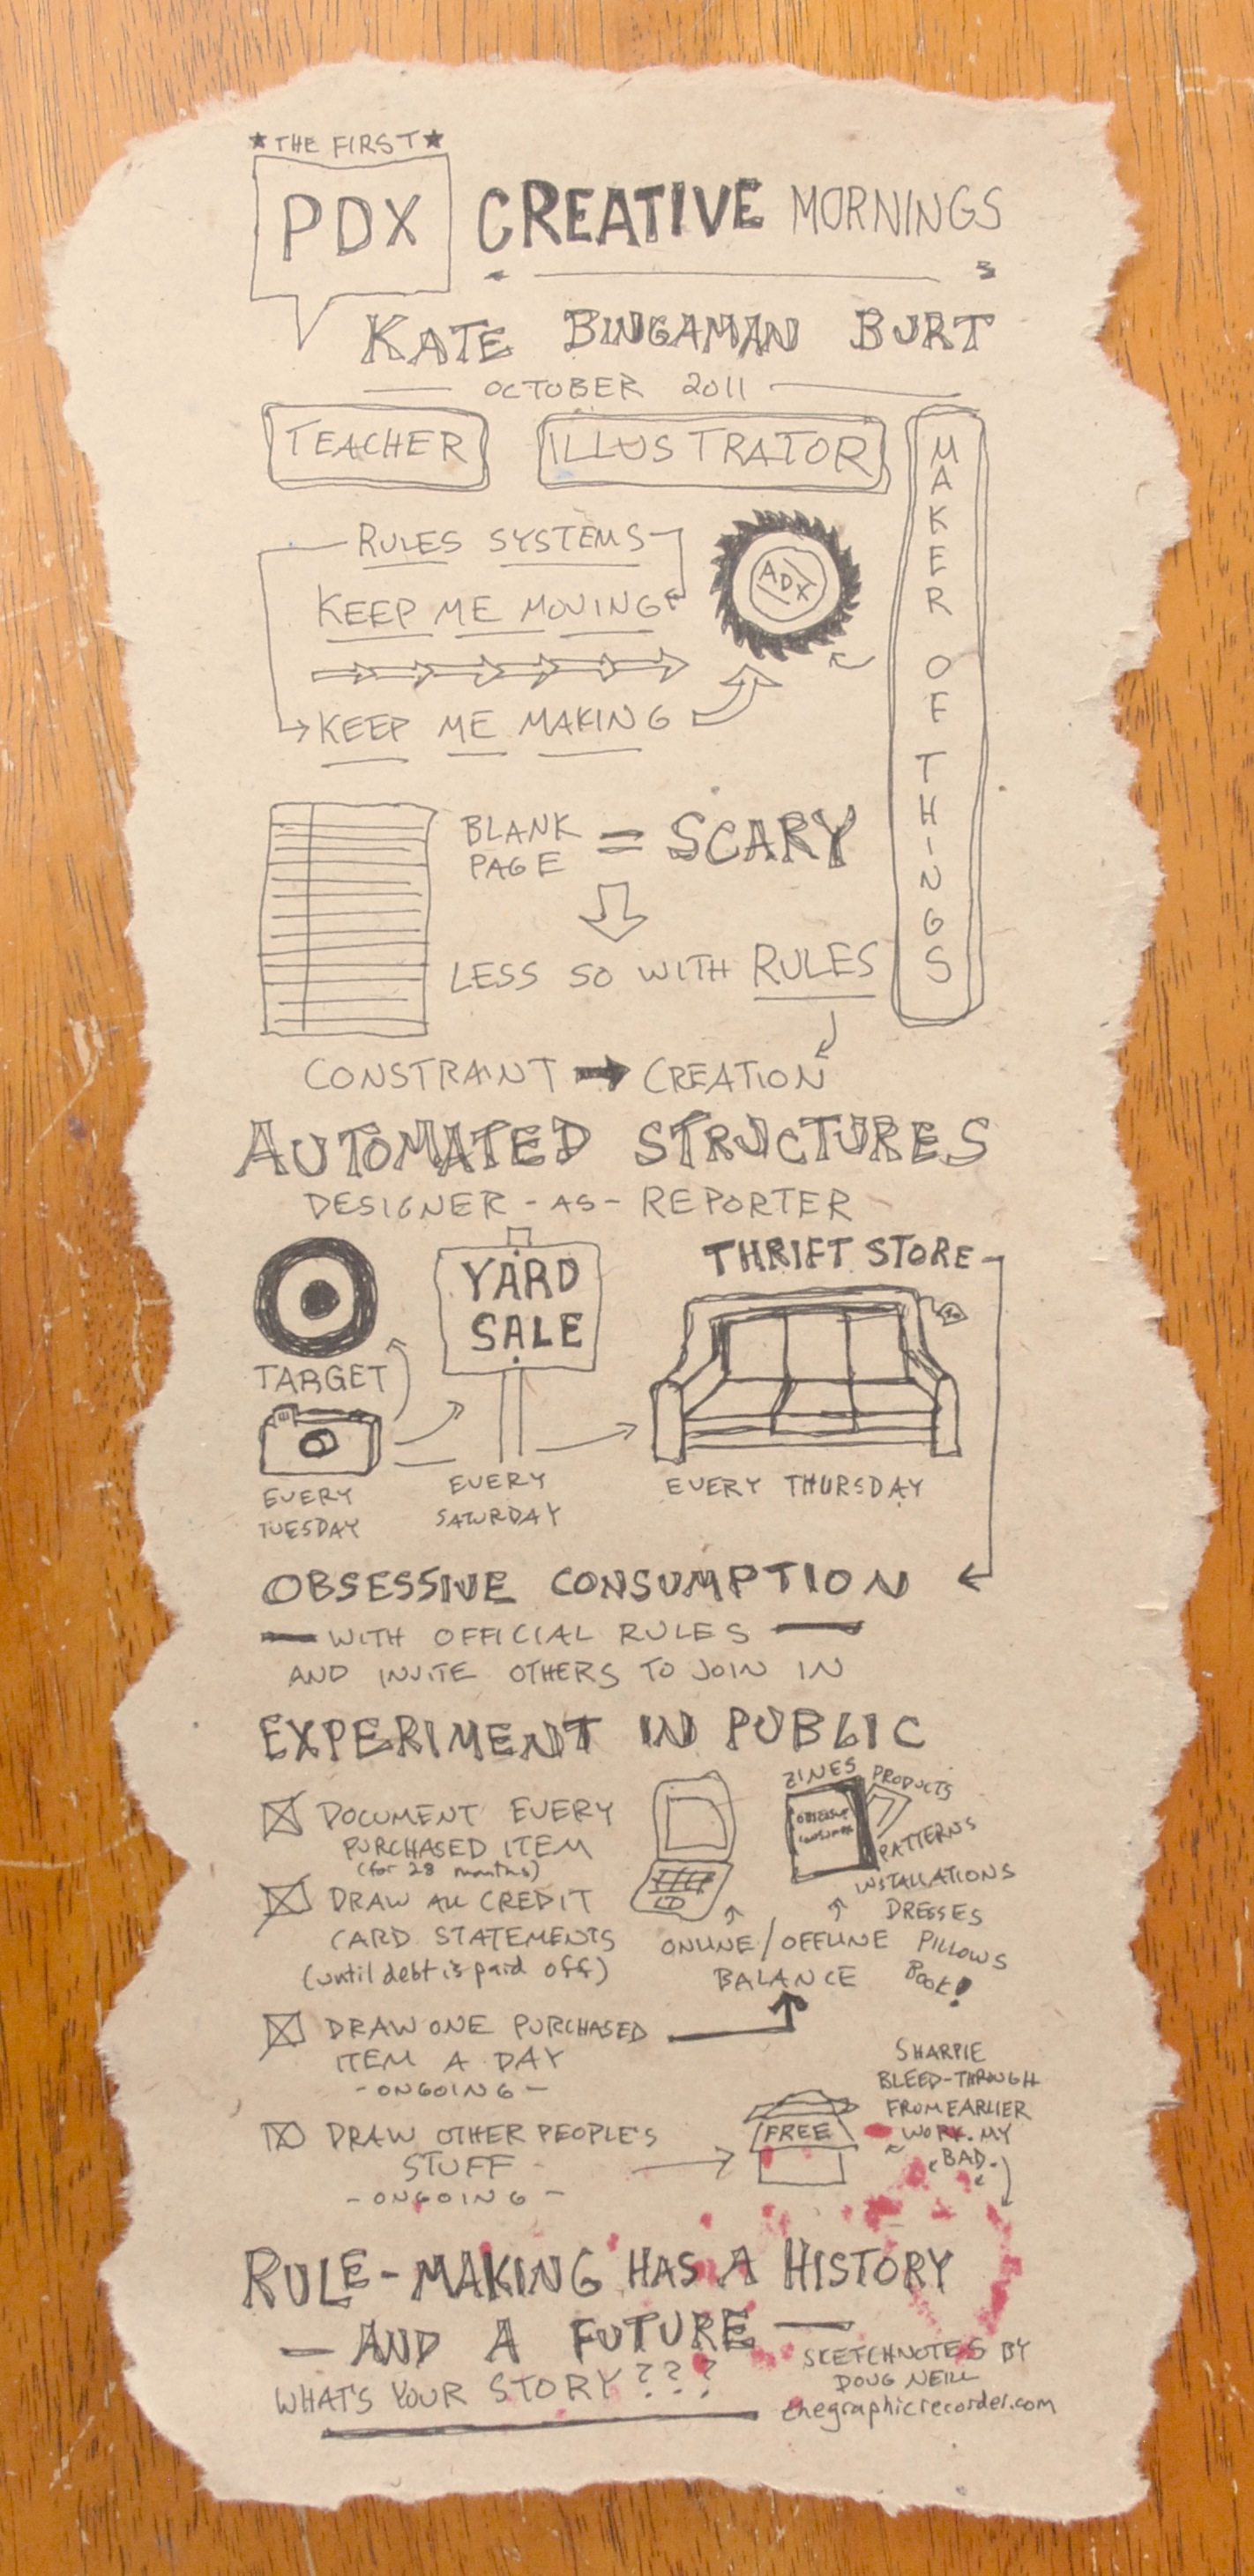 Kate Bingaman Burt Creative Mornings PDX Sketchnotes - Doug Neill - rules systems, automated structures, obsessive consumption, experiment in public, blank page, creative constraints